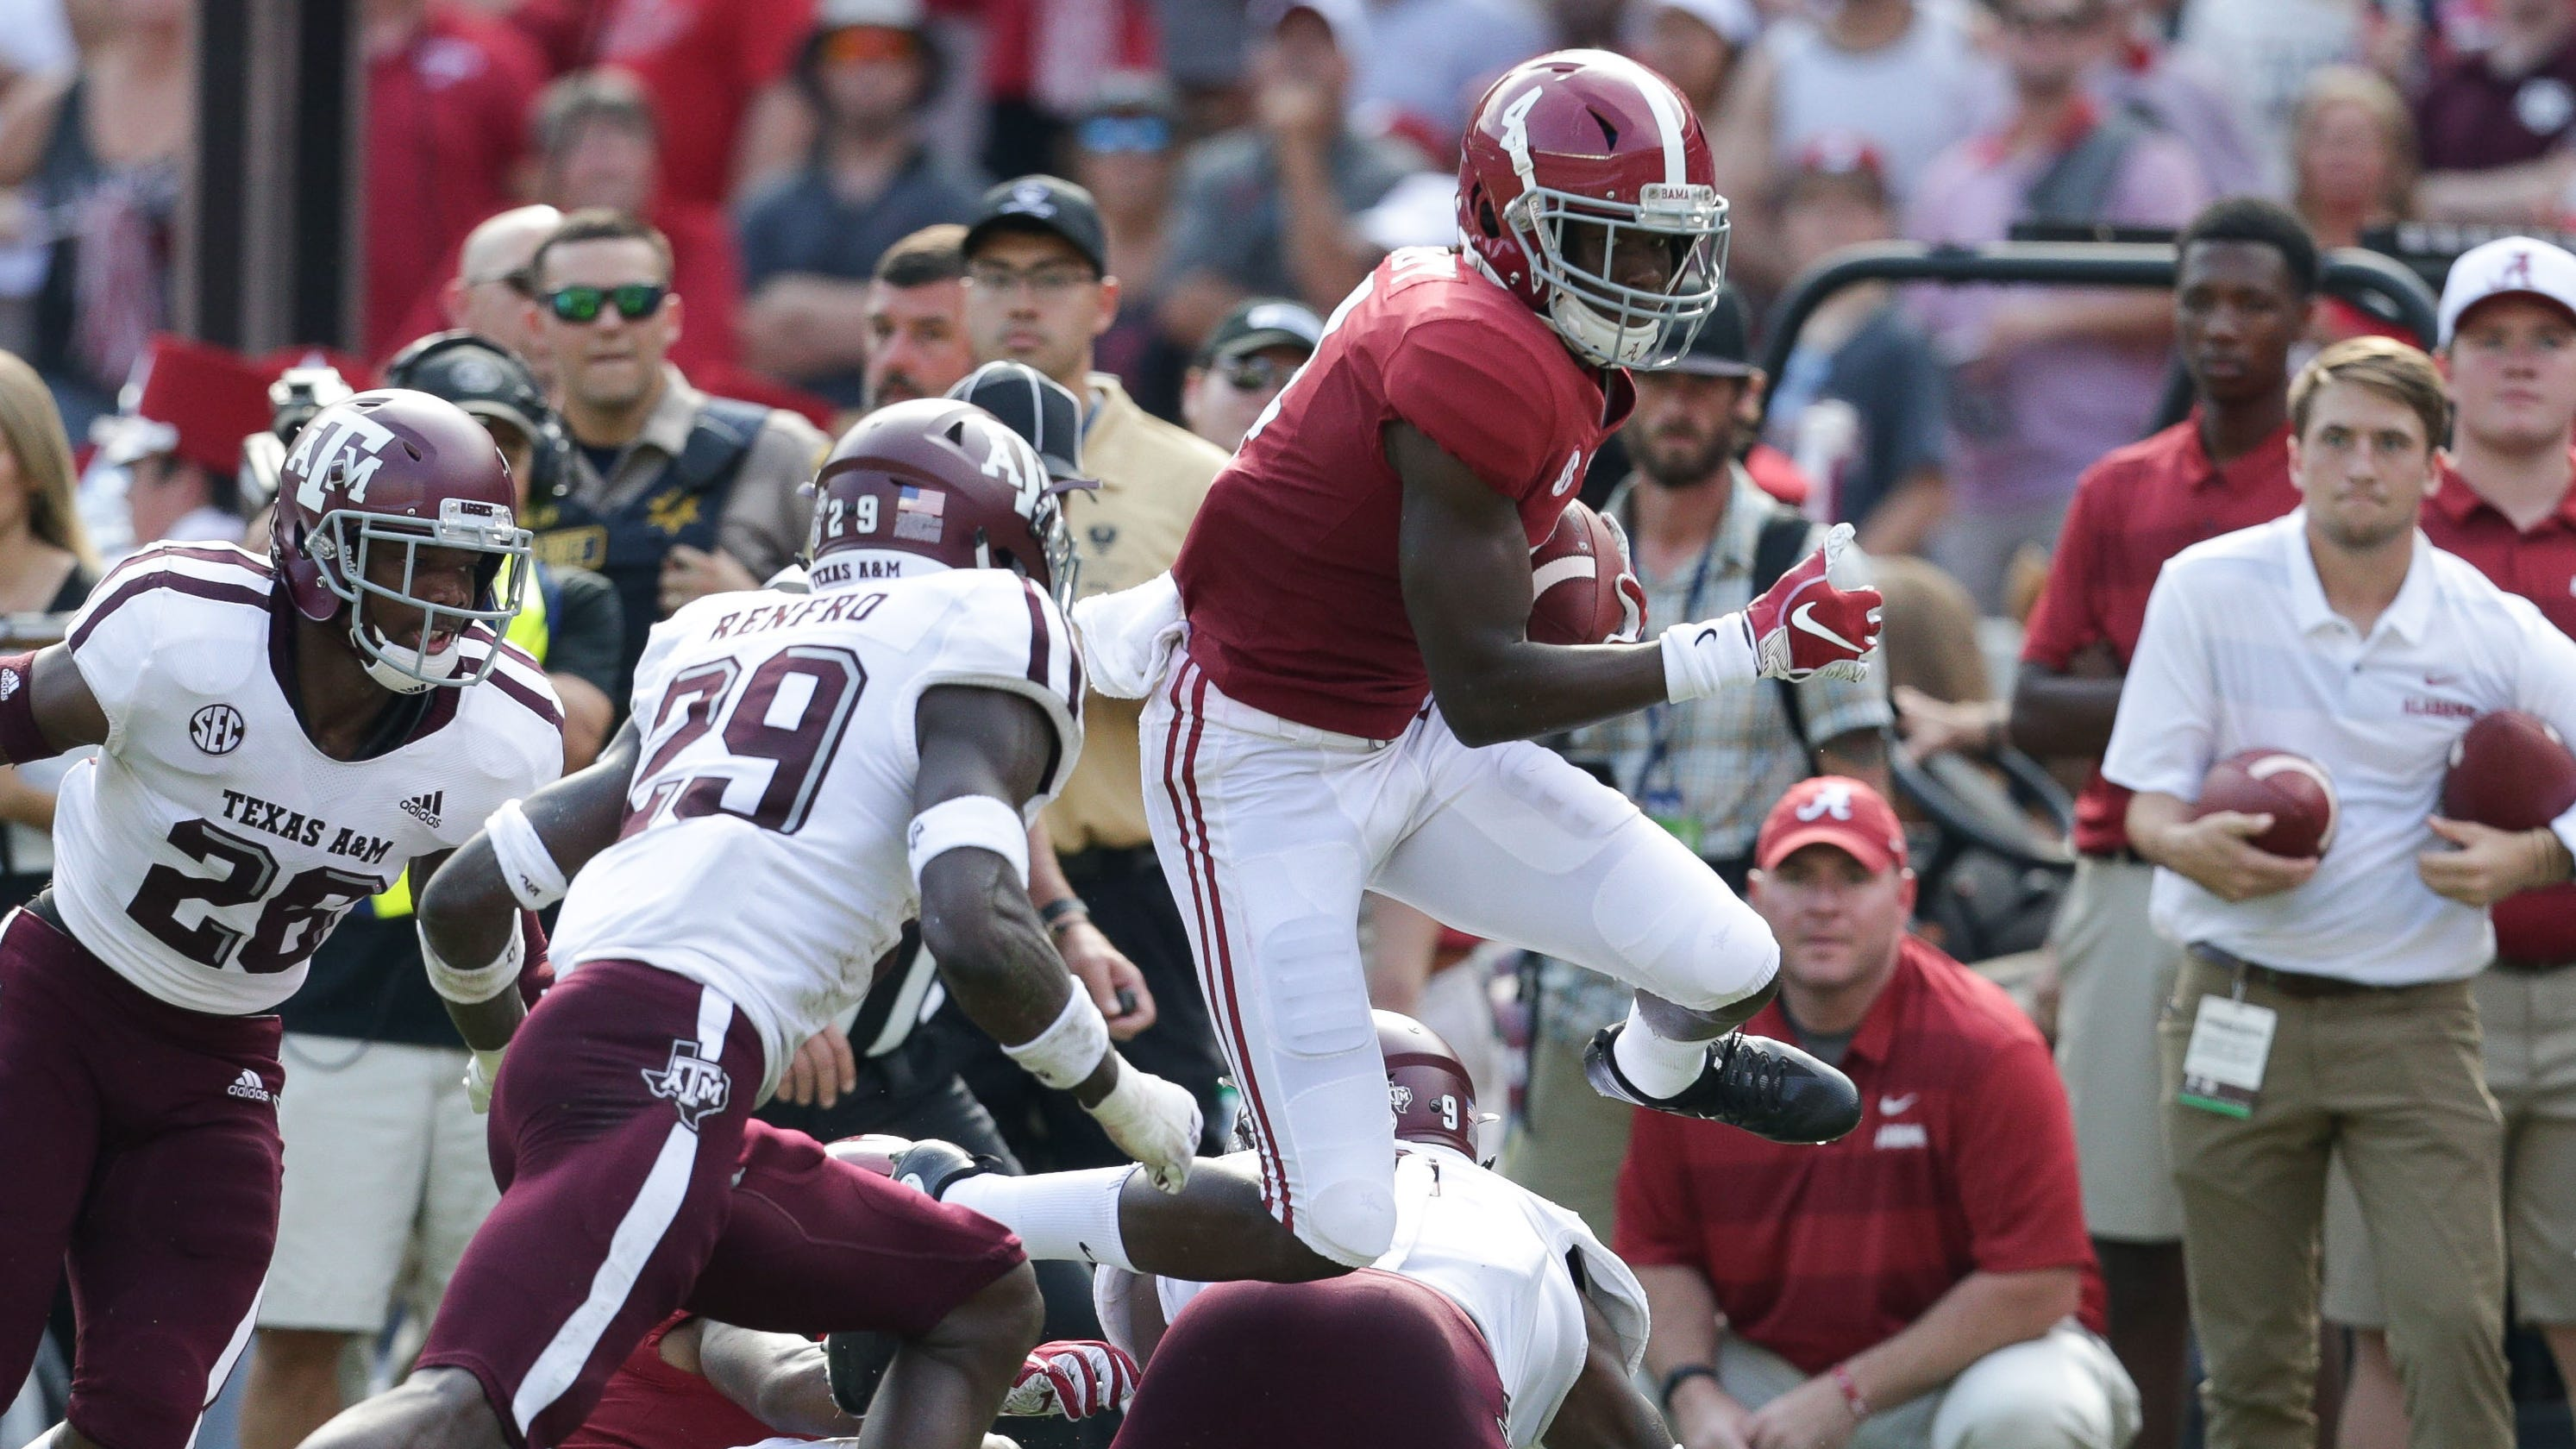 Winners and losers from college football's Week 4 headlined by Alabama's dominance